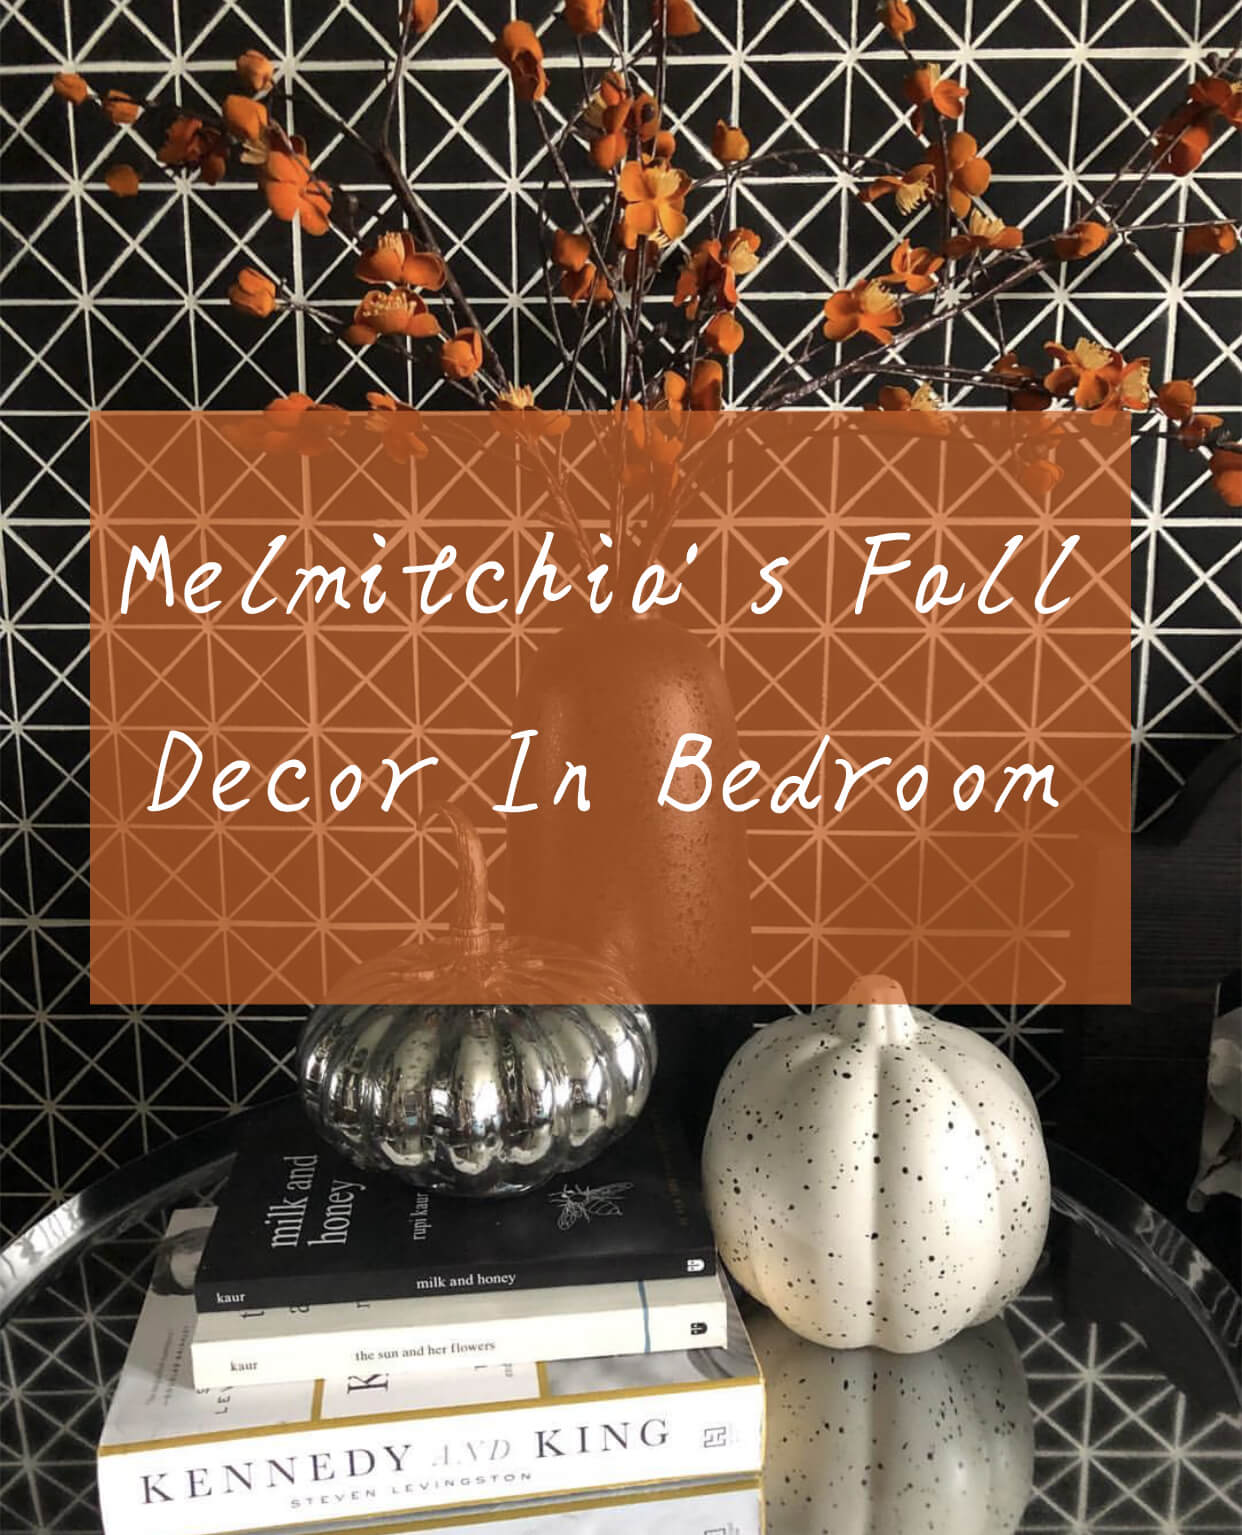 Melmitchia S Fall Decor In Bedroom